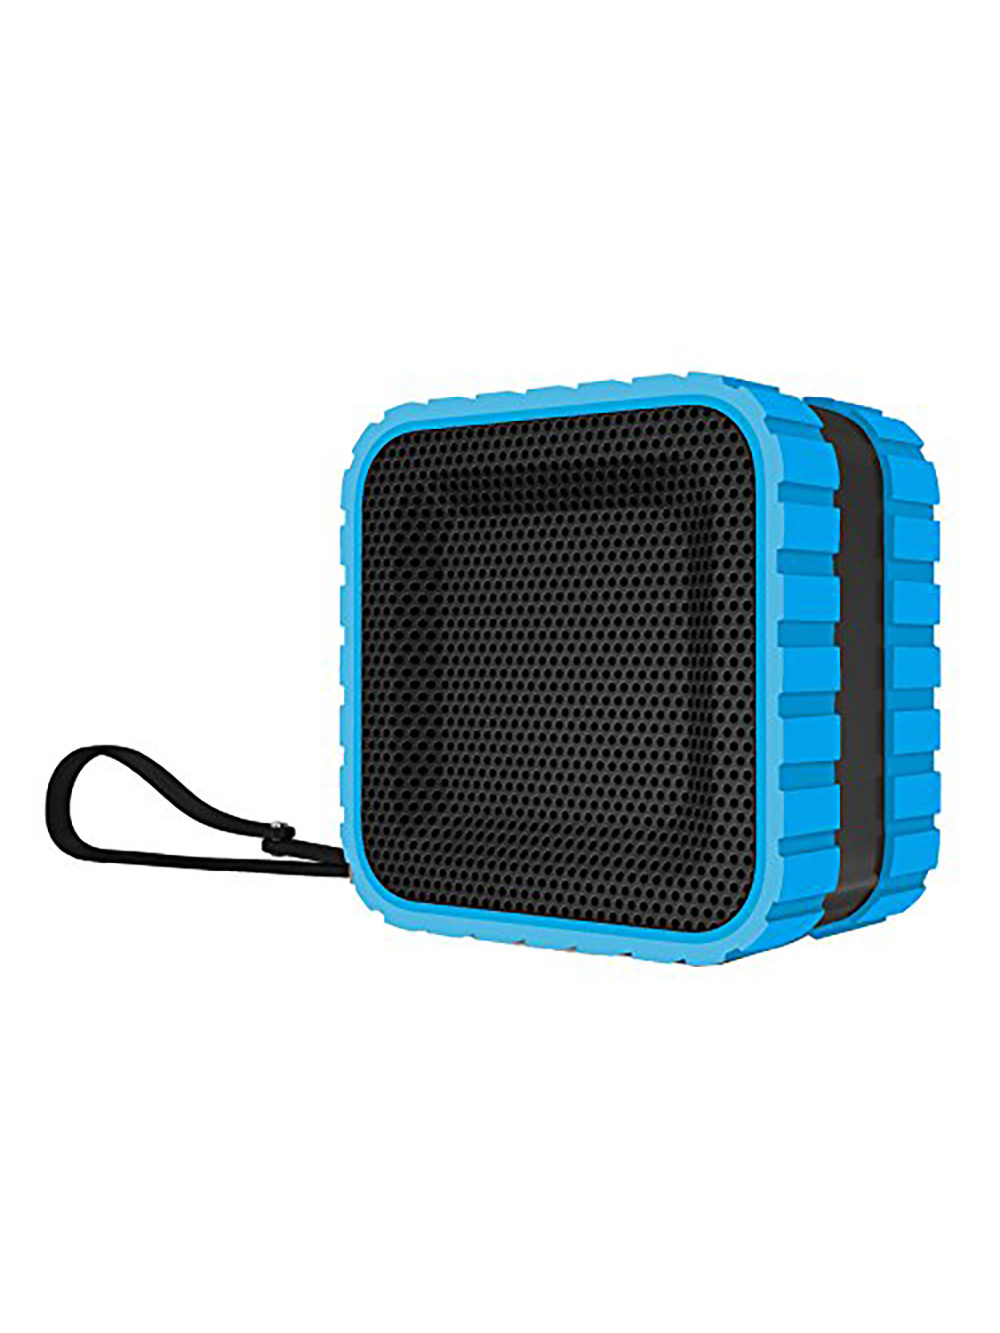 Aktiv Sounds Waterproof Bluetooth Cube Speaker